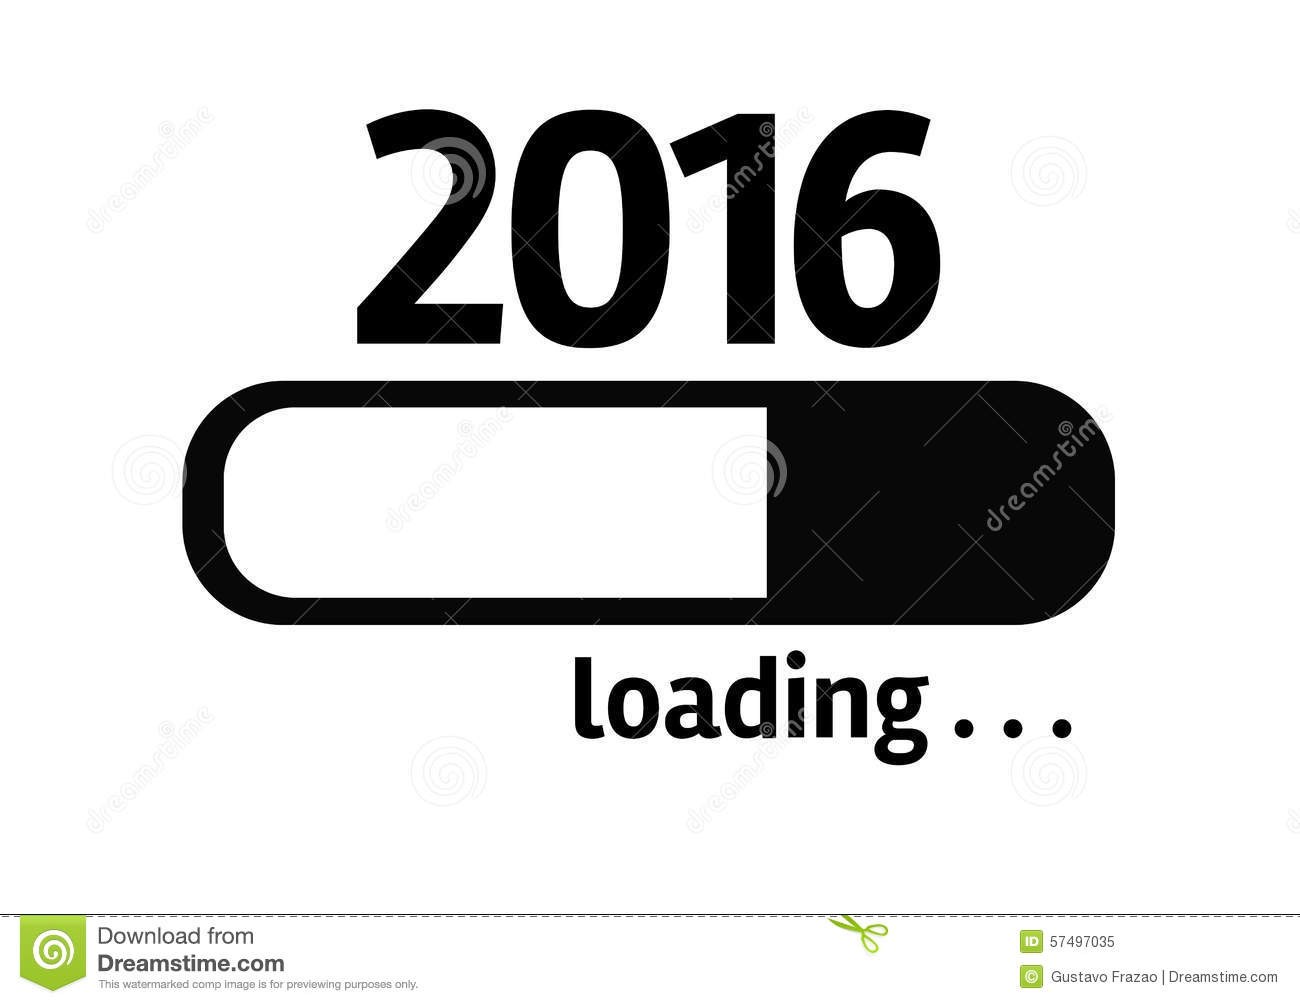 Progress Bar Loading With The Text: 2016 Stock Photo - Image: 57497035